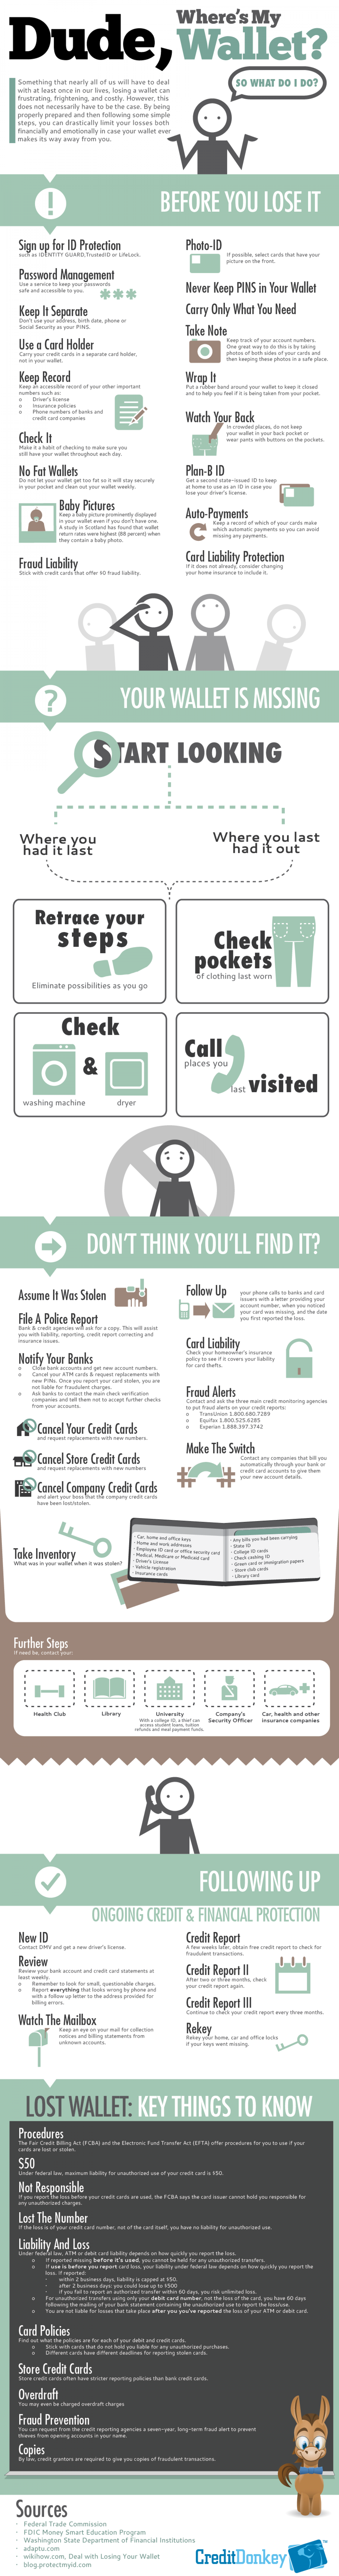 Dude Where's My Wallet  Infographic